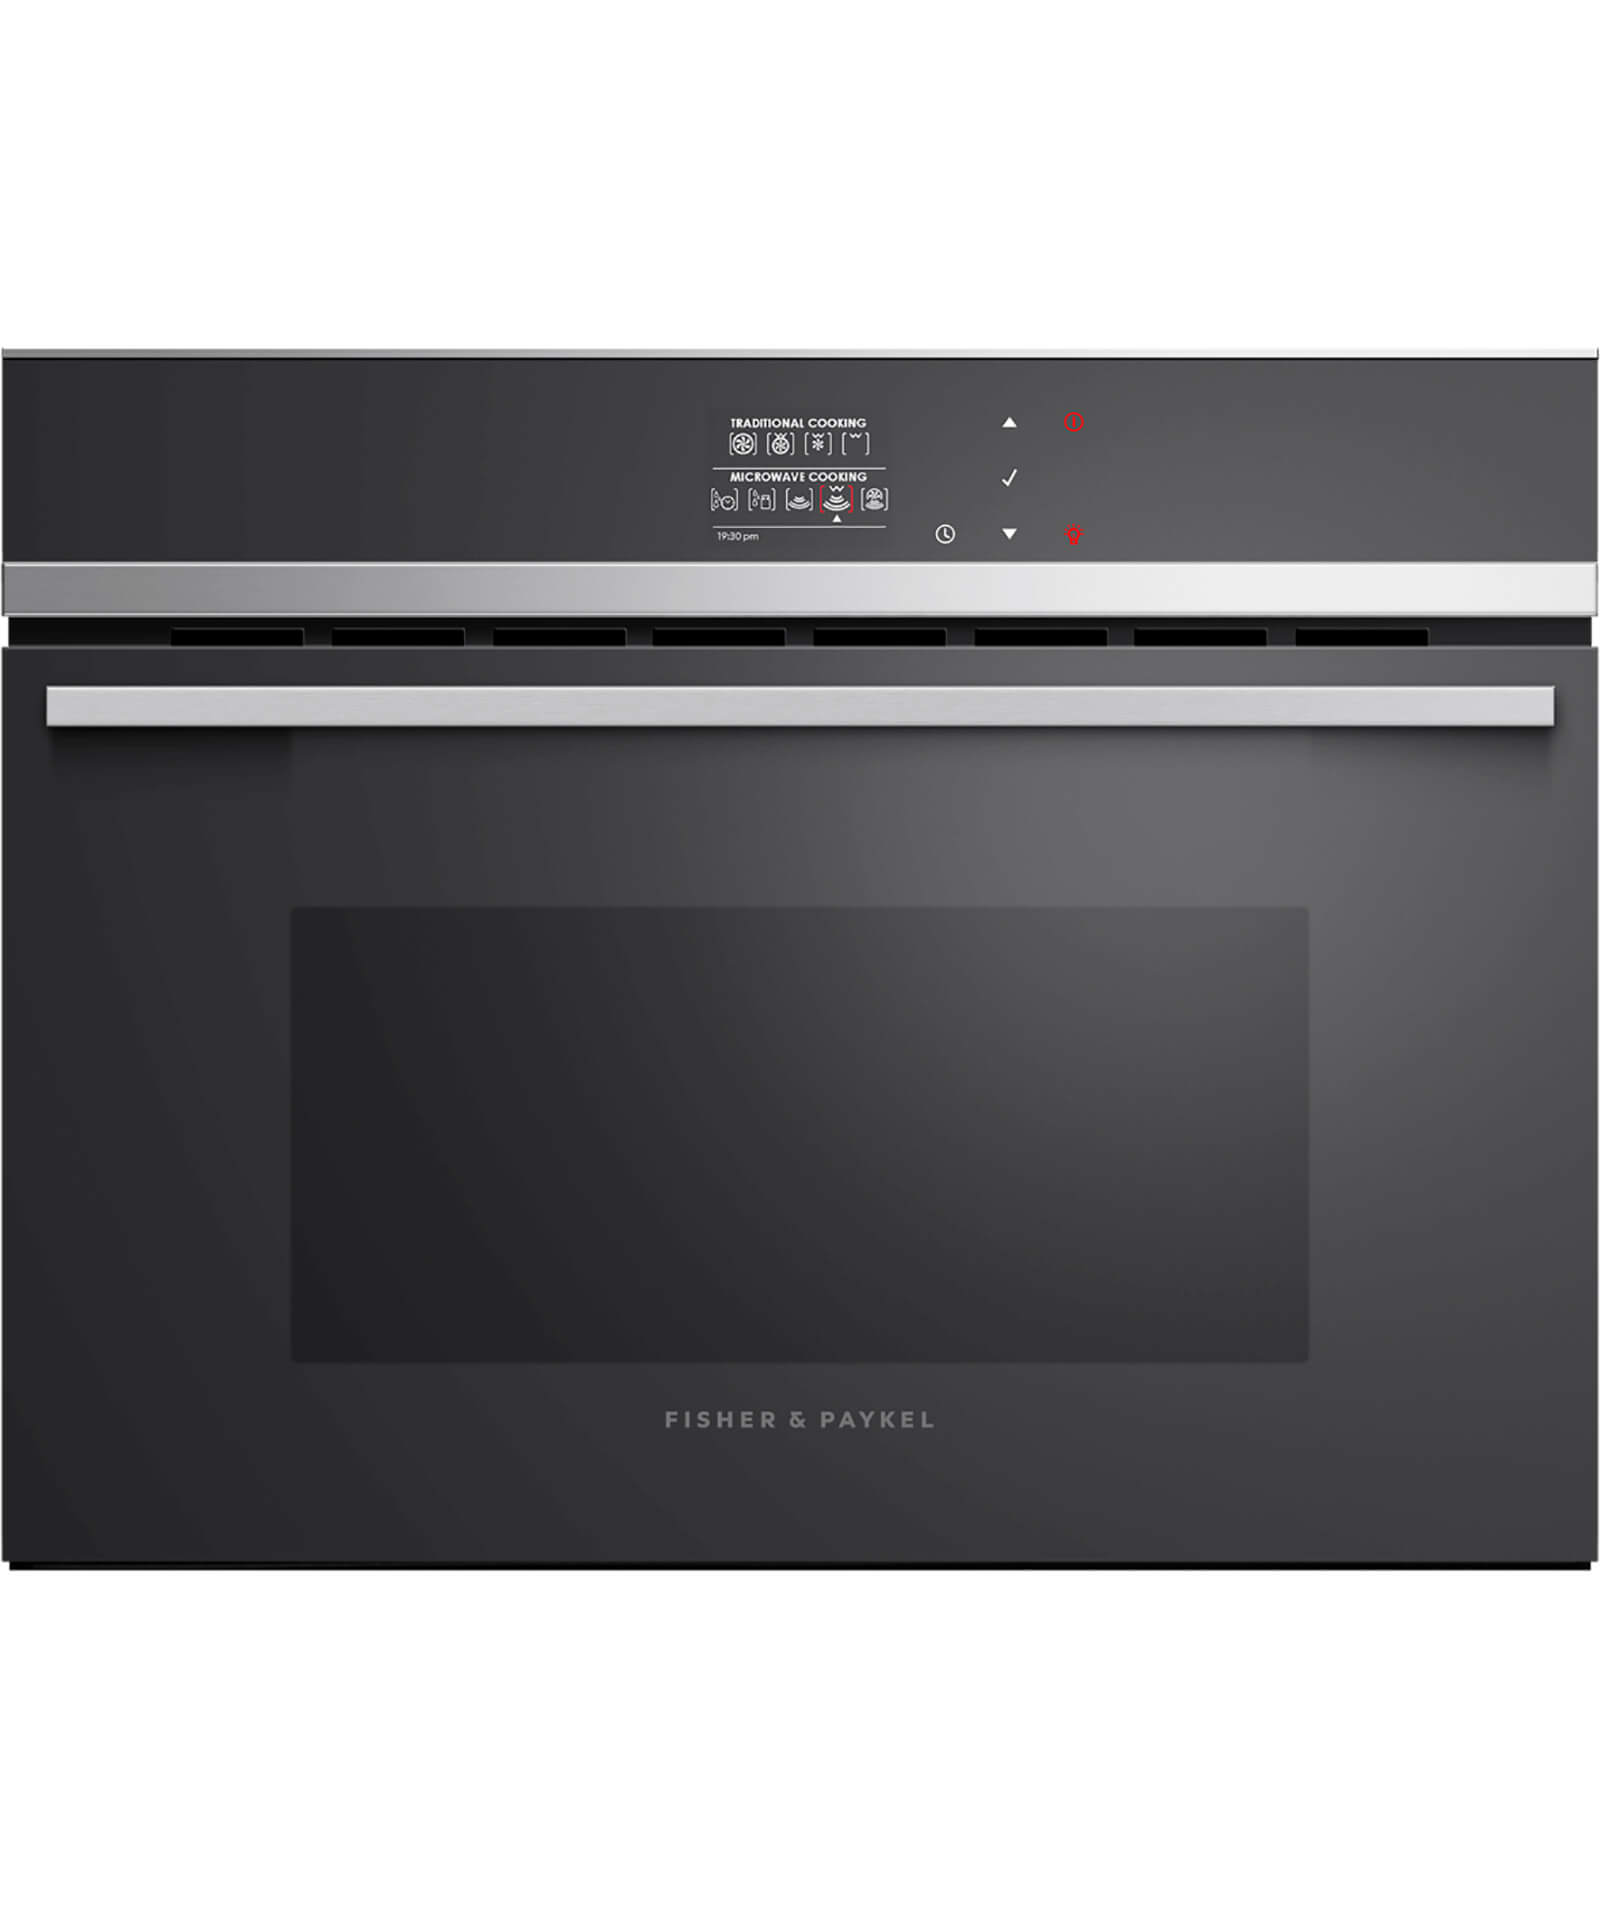 Om60ndb1 Built In Combination Microwave Oven 60cm Fisher